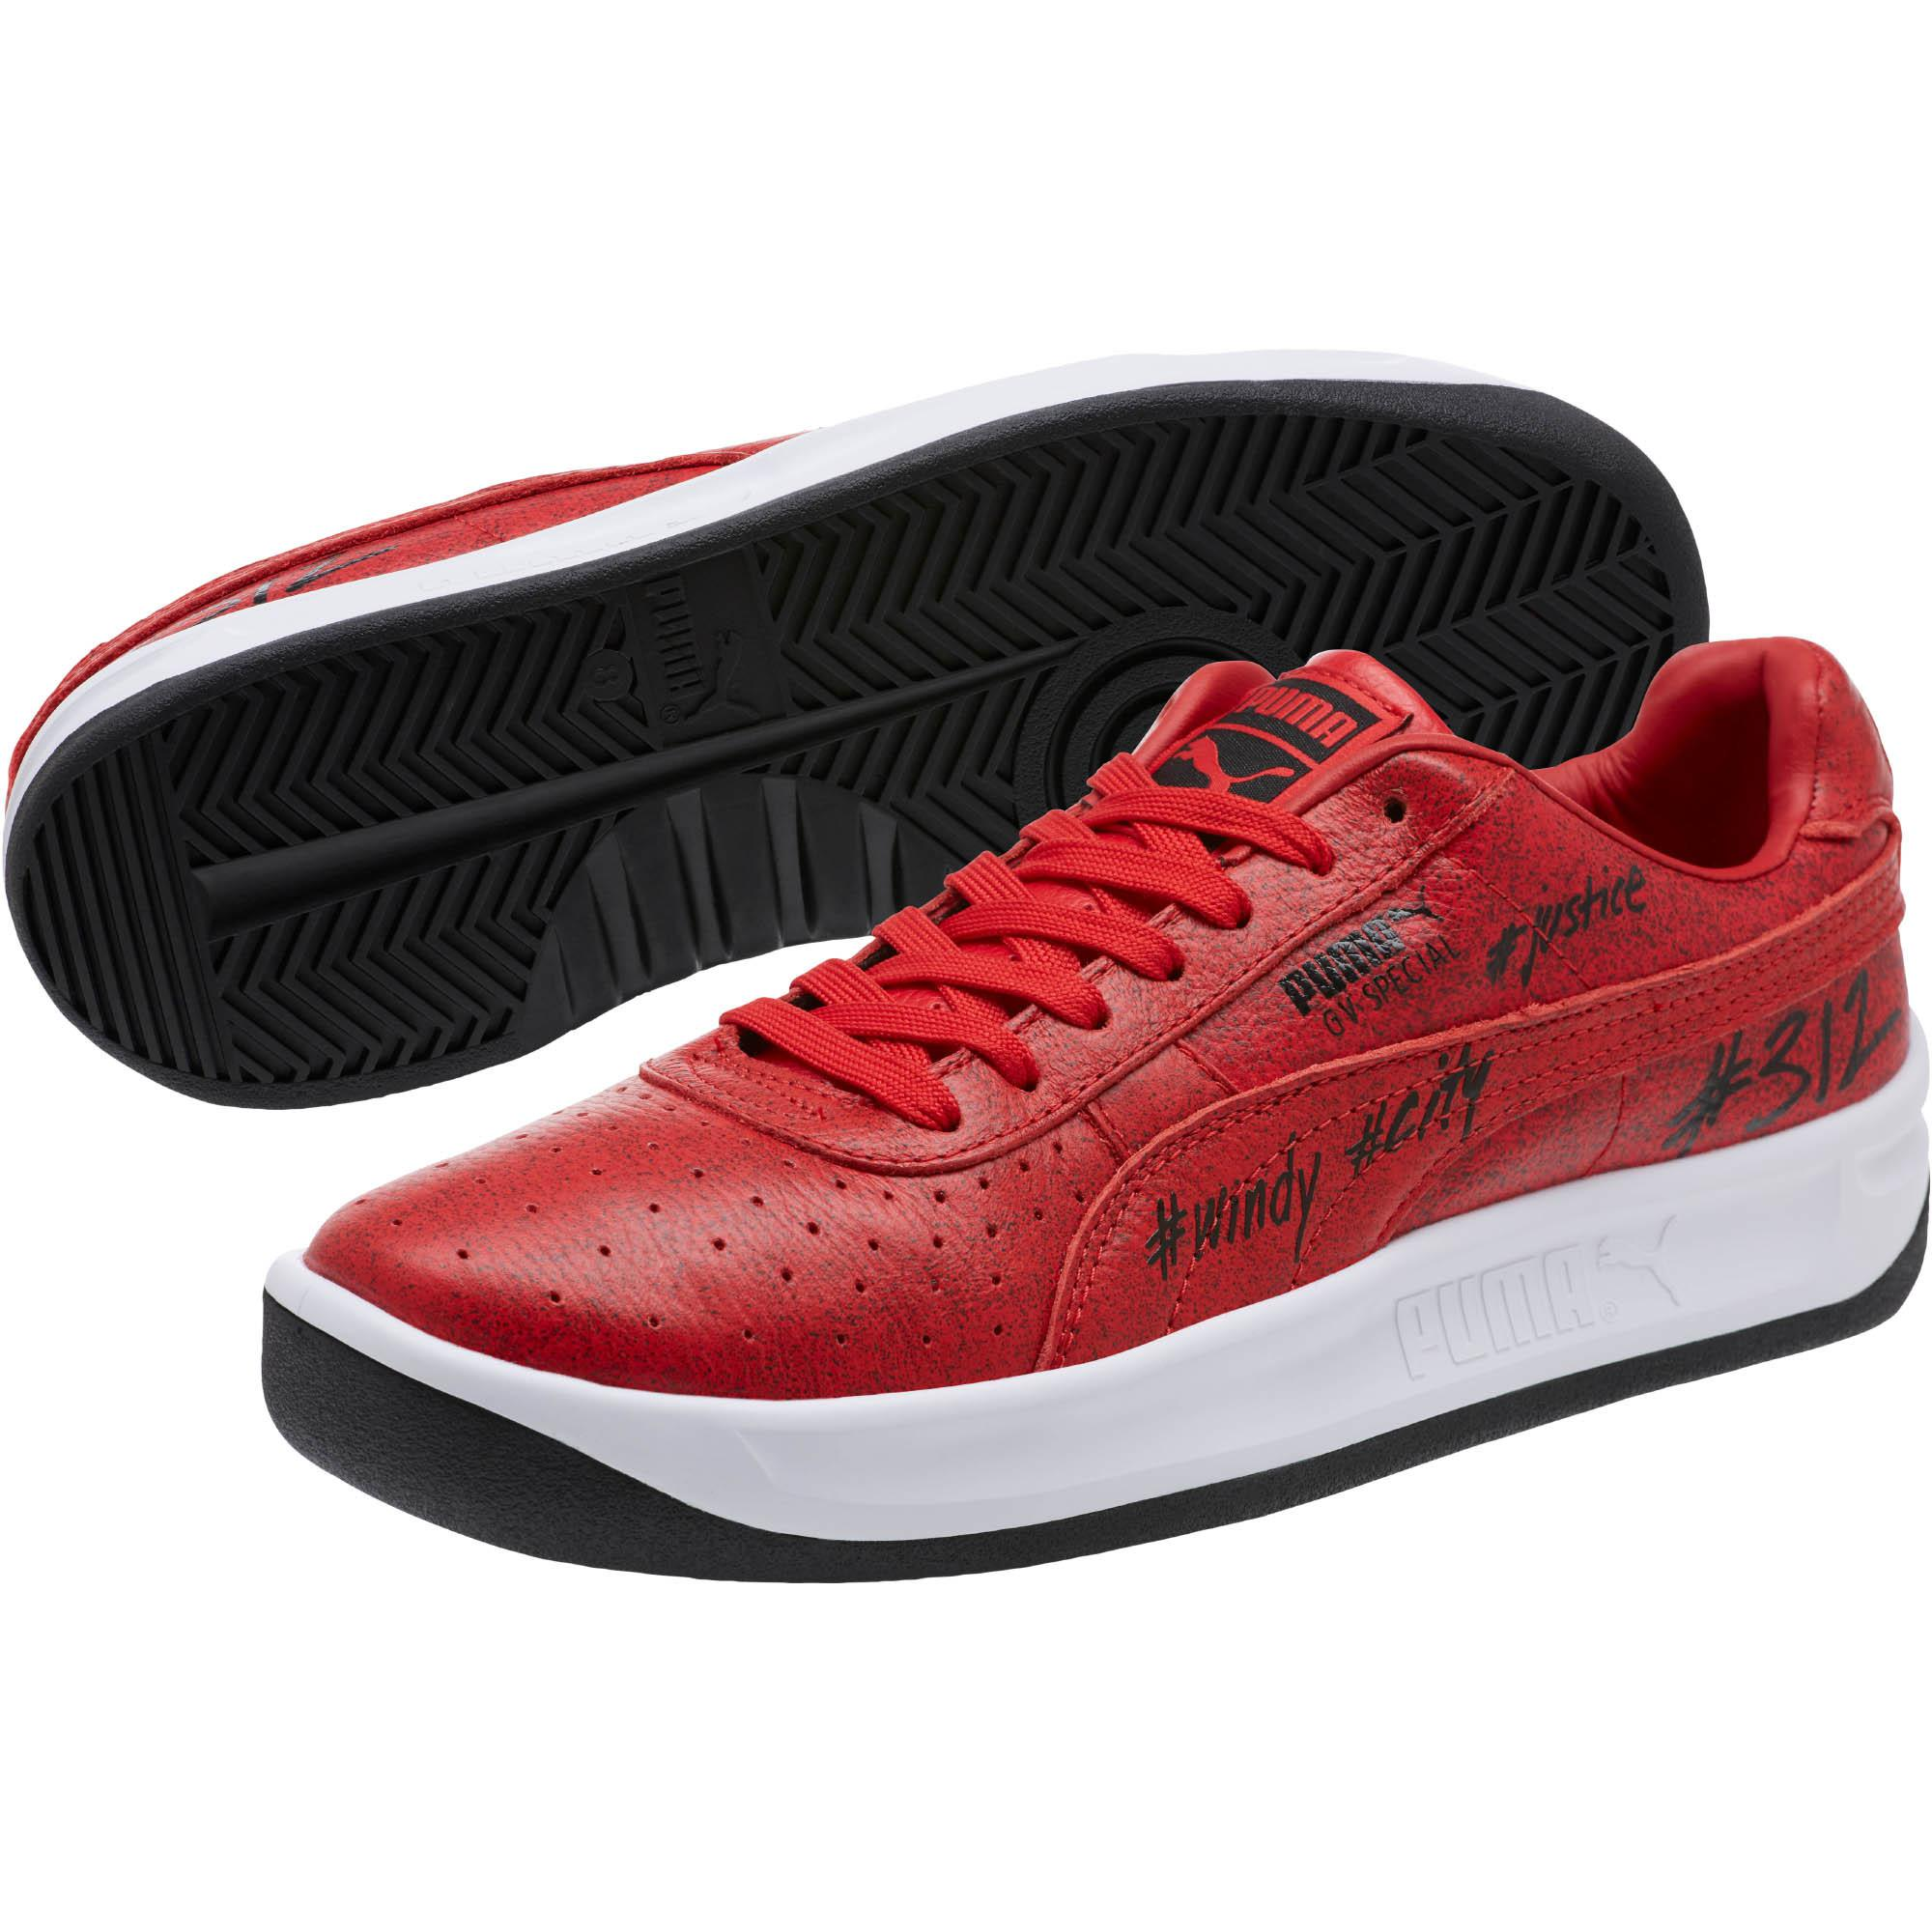 d8bd4b8620f9 PUMA - Red Gv Special Chicago Sneakers for Men - Lyst. View fullscreen